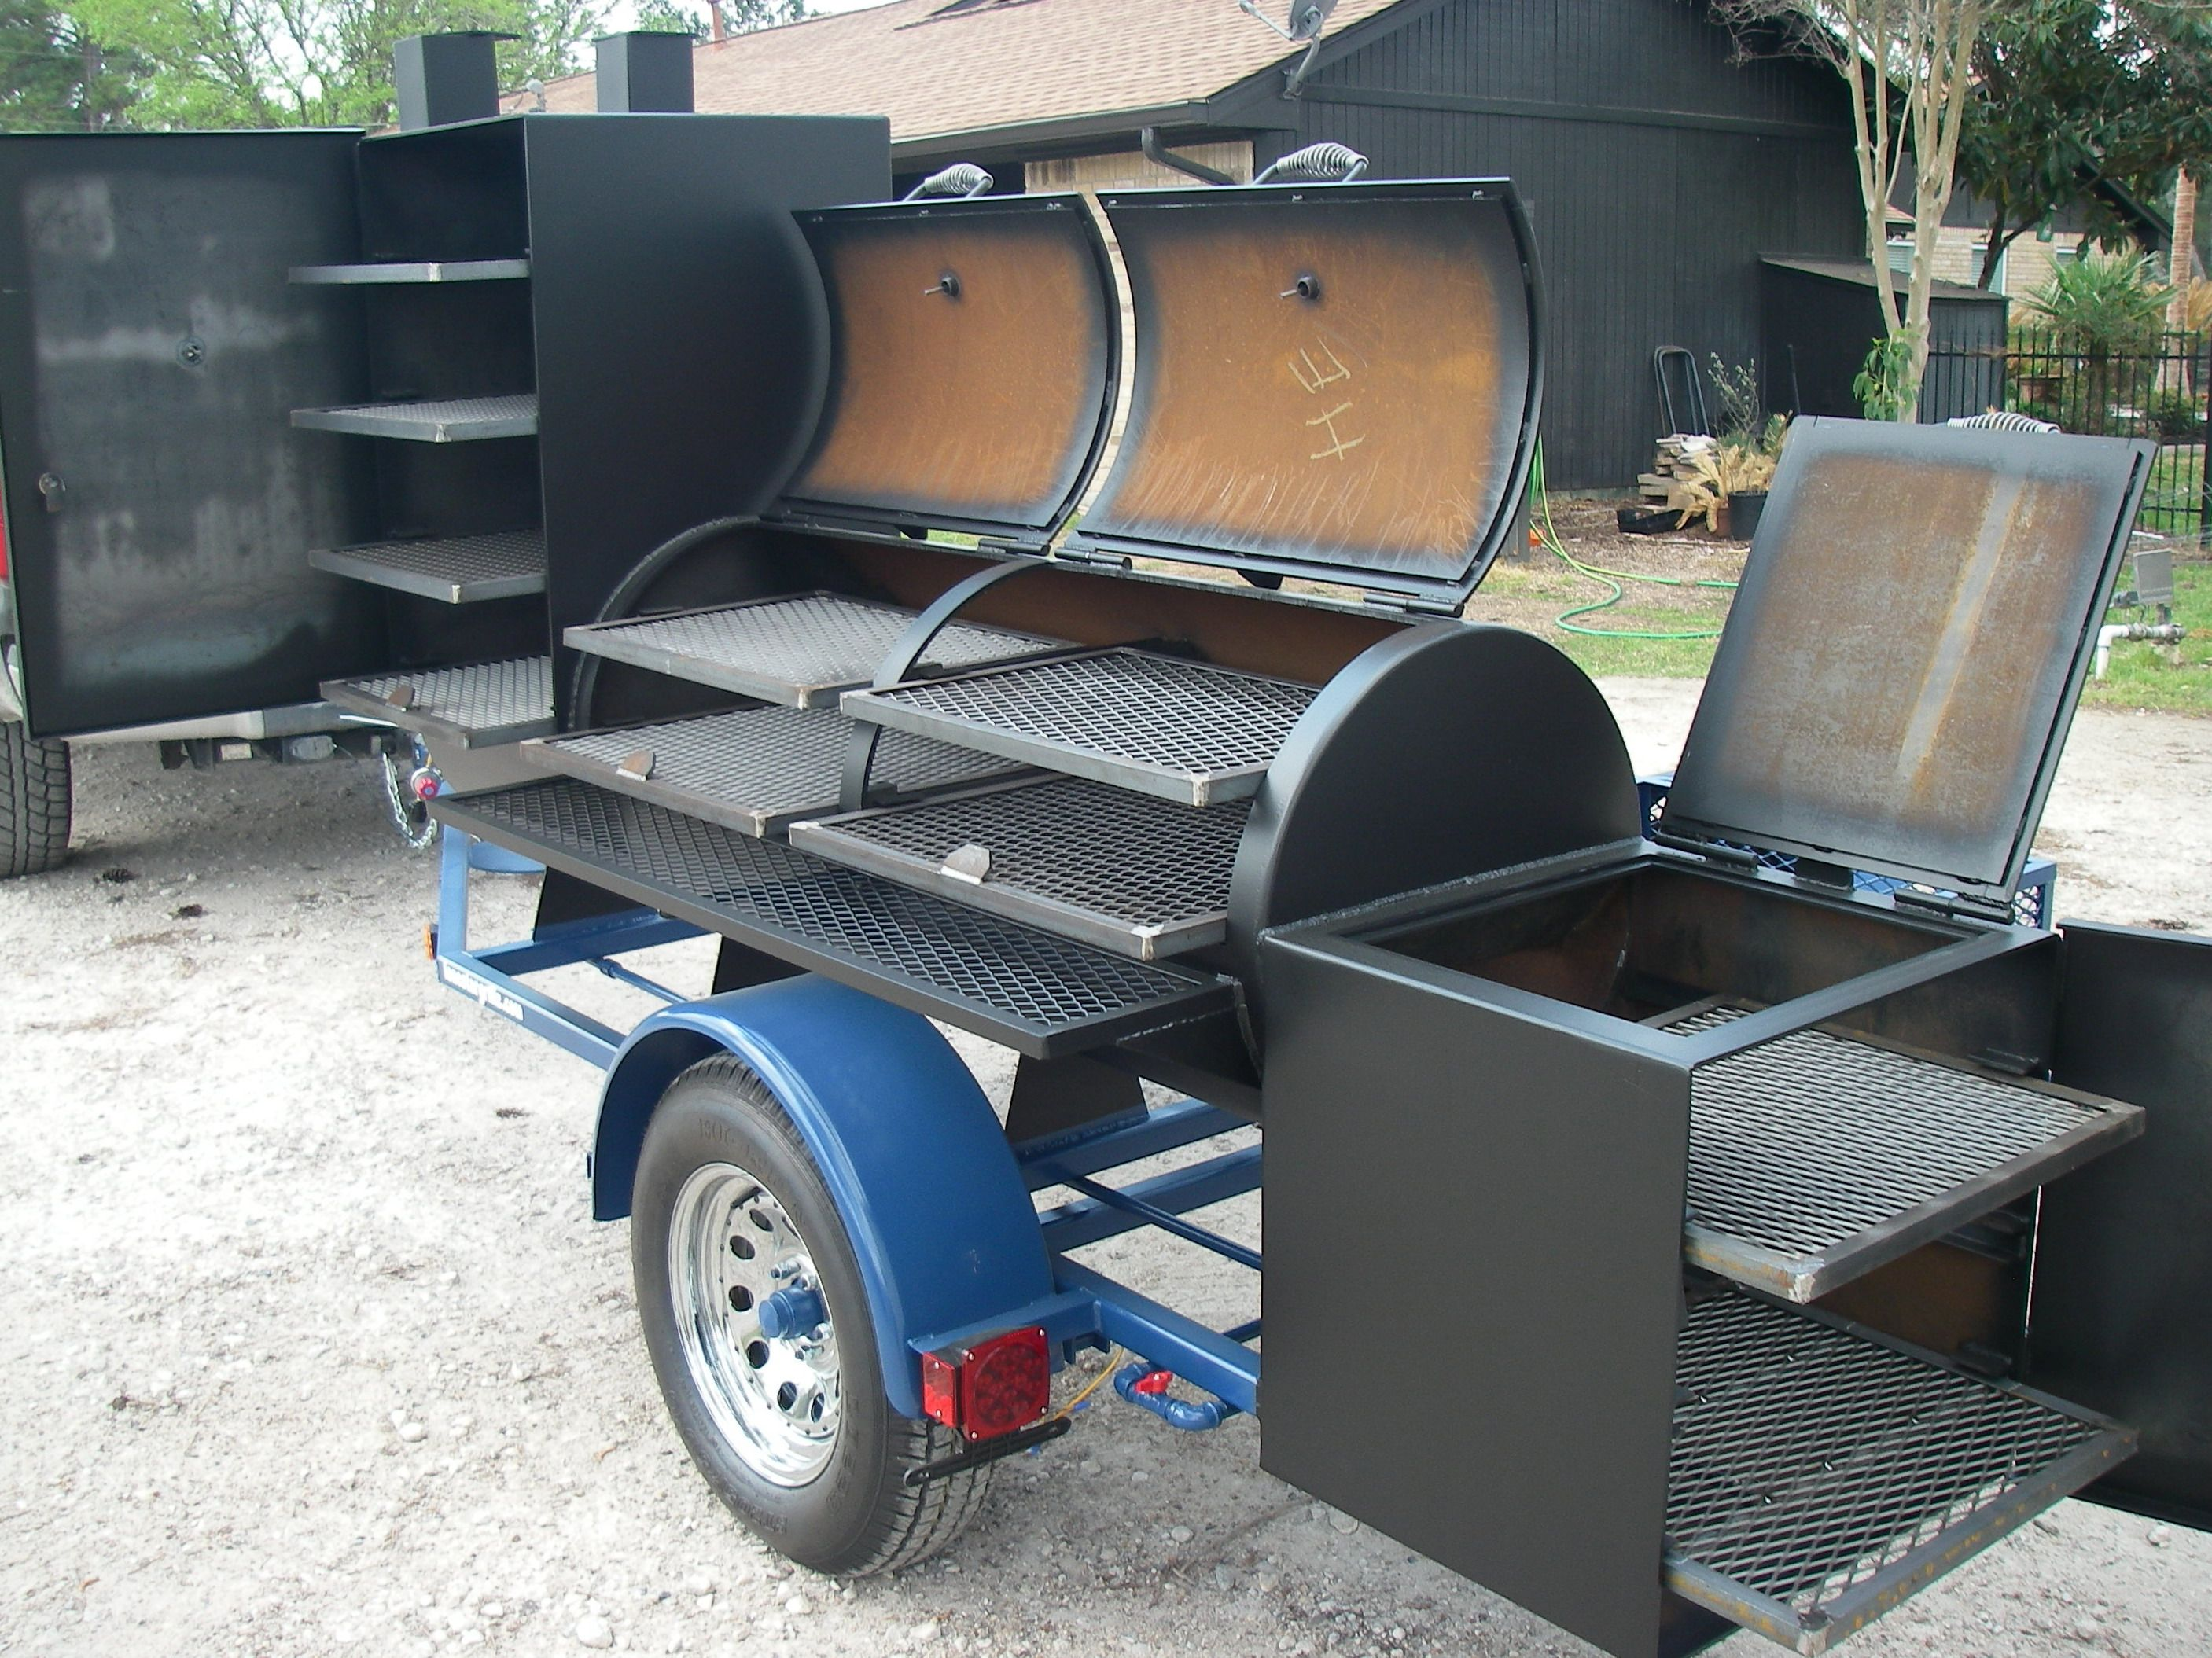 Trailer pit like the grill above the fire box